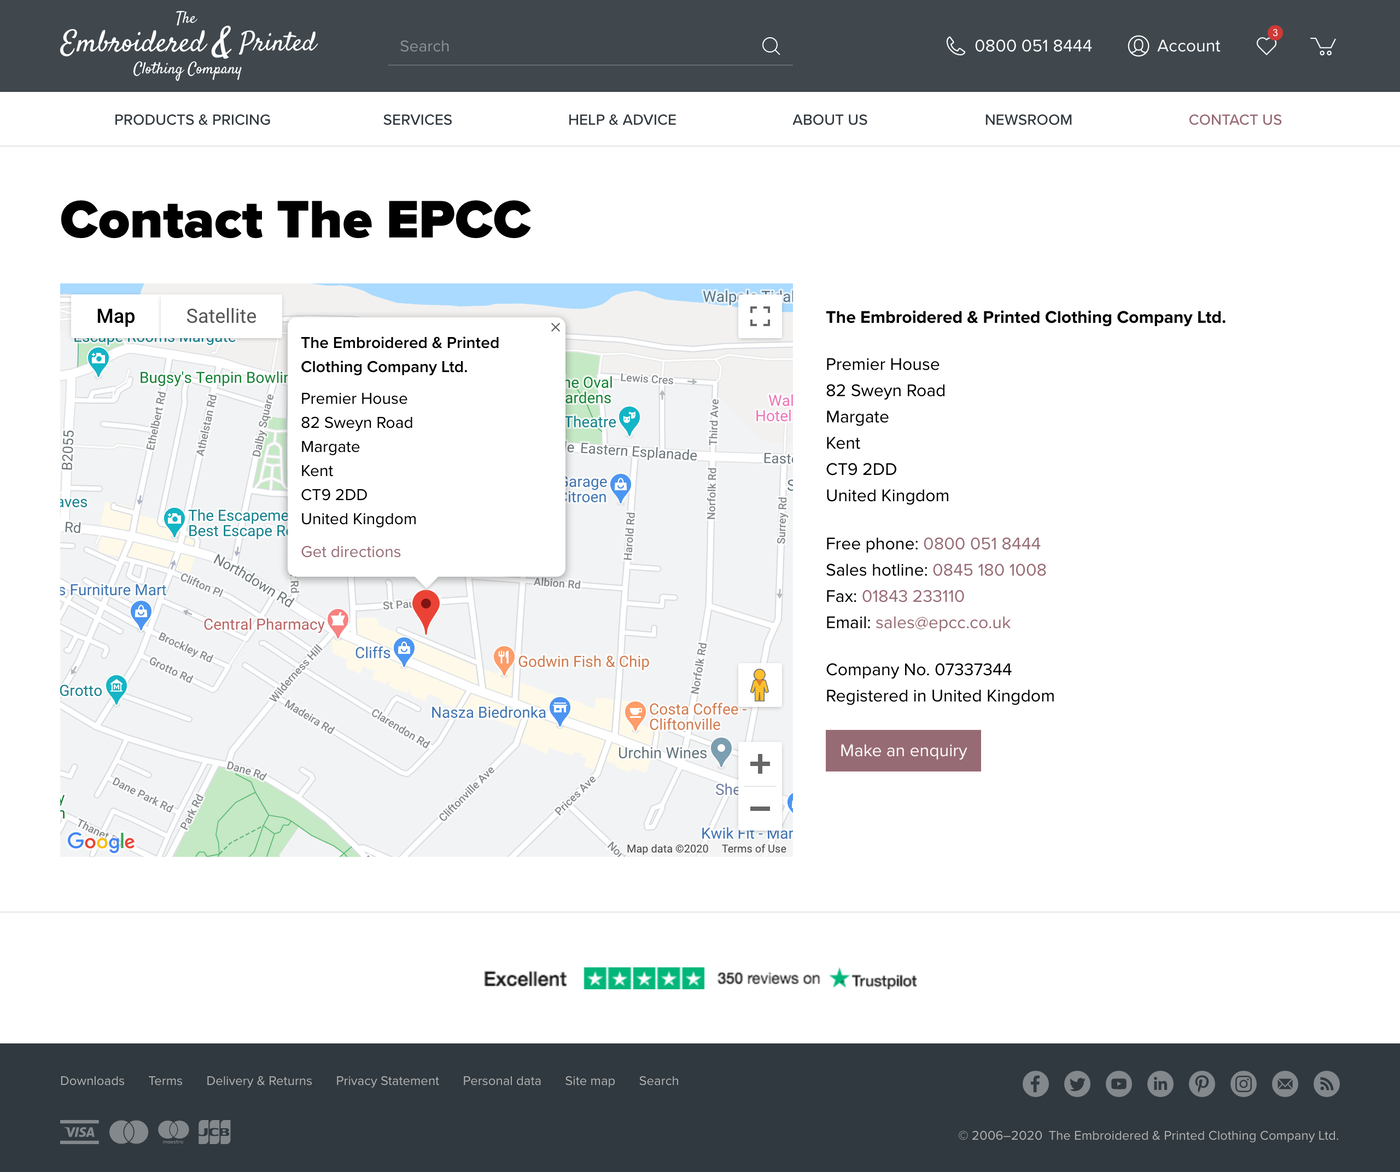 The EPCC Contact us